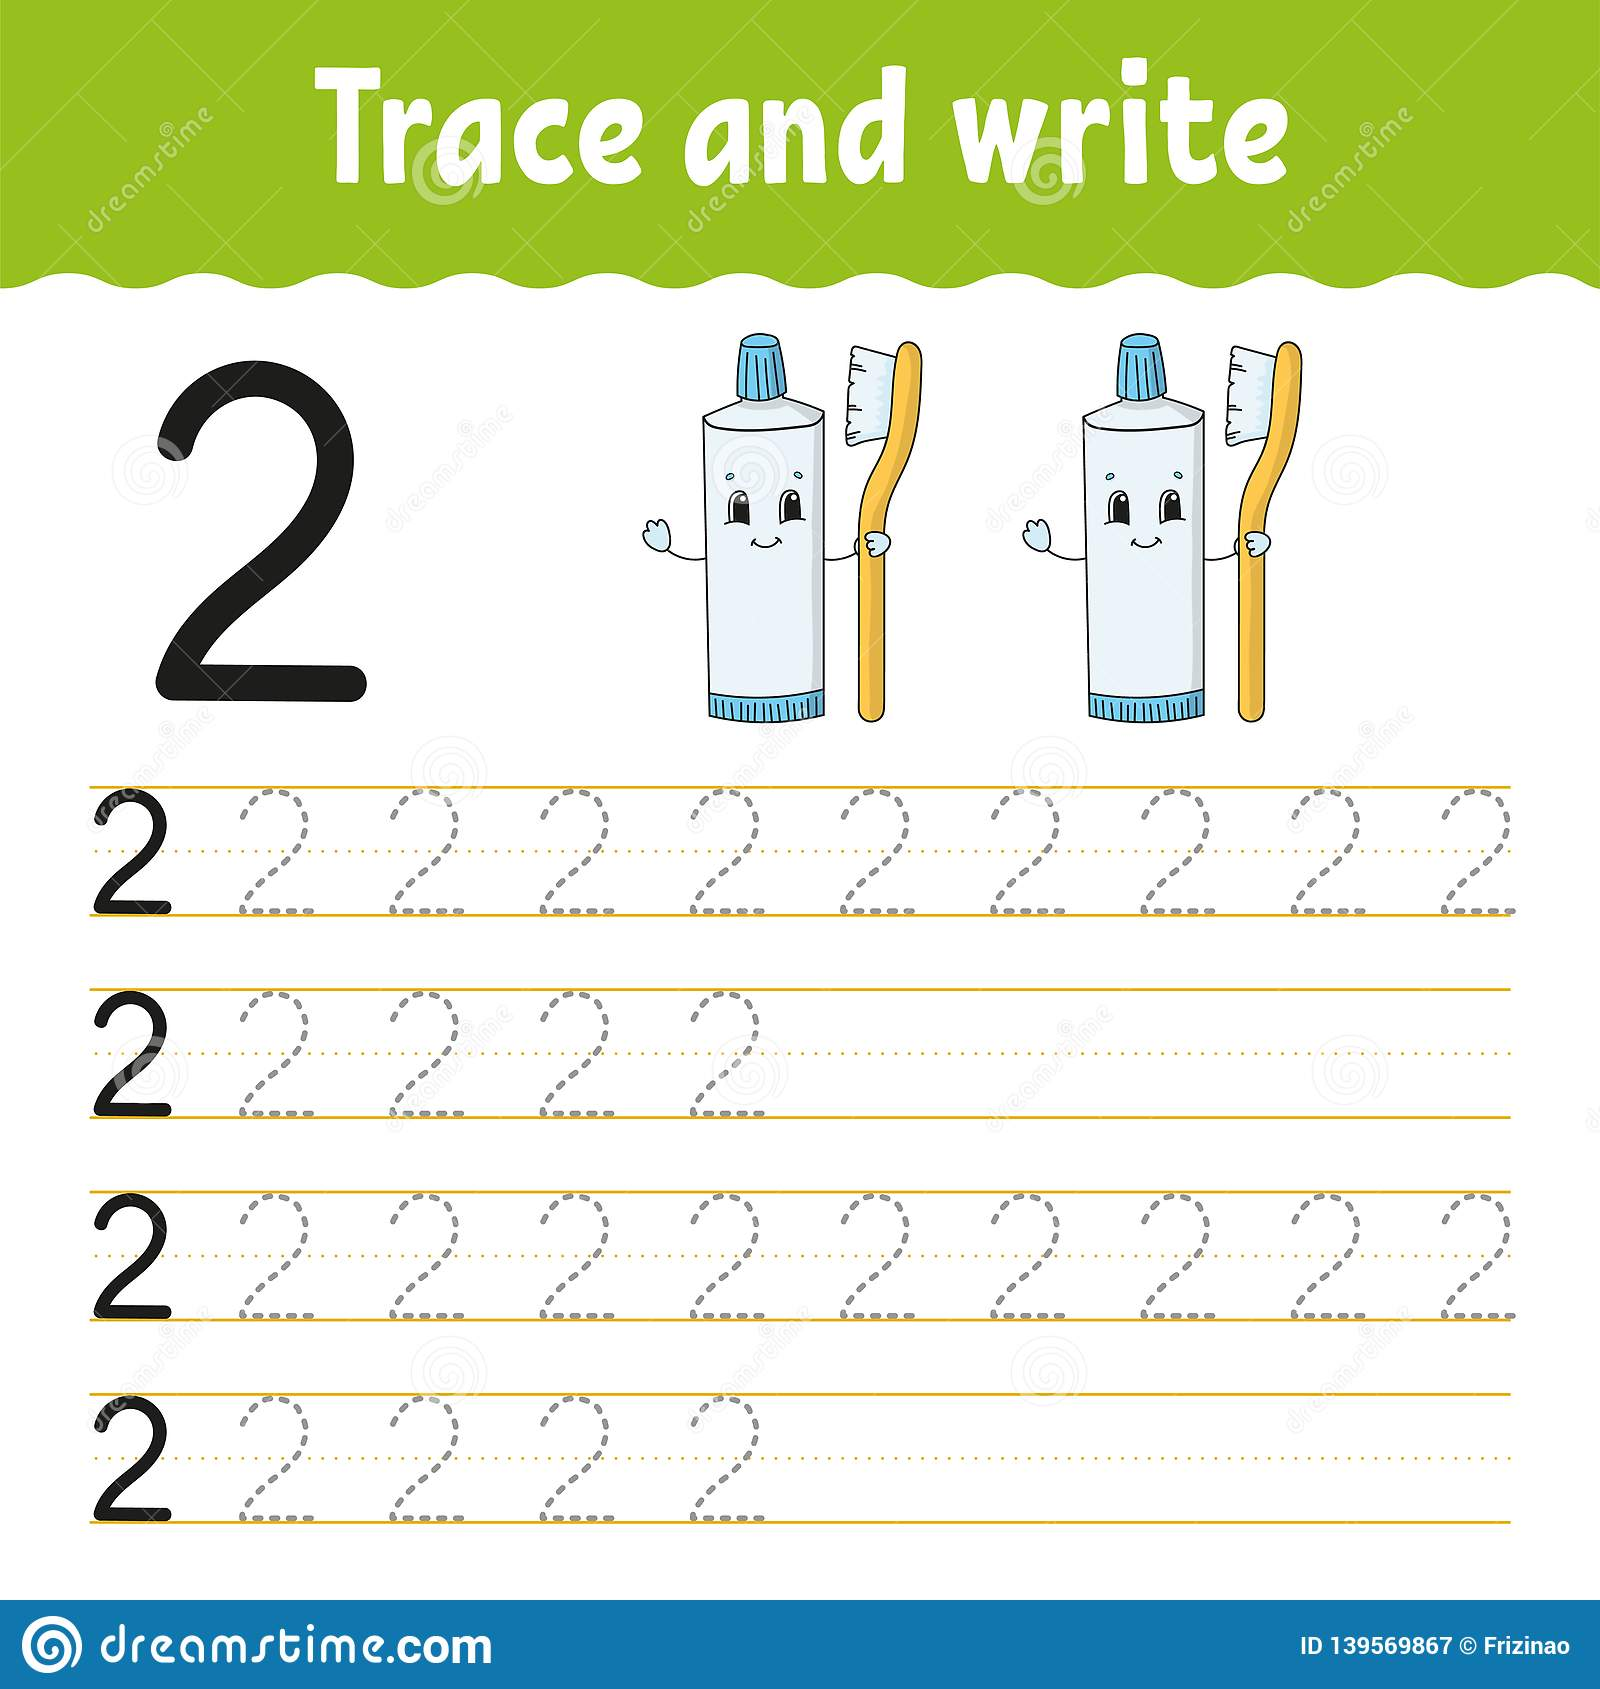 Trace And Write Handwriting Practice Learning Numbers For Kids Education Developing Worksheet